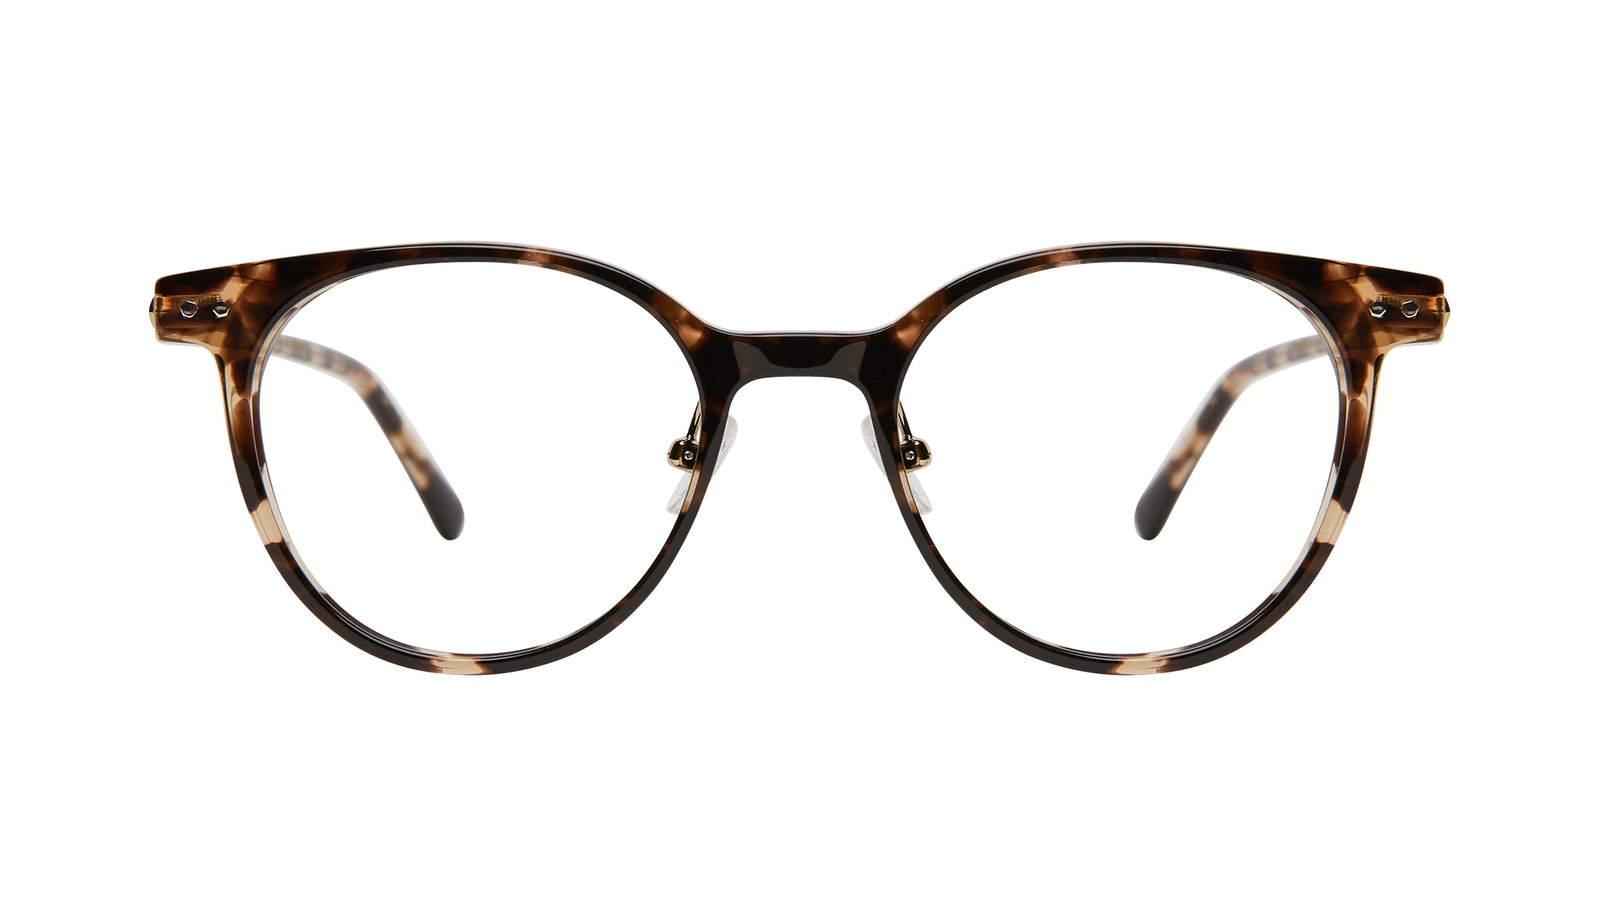 Affordable Fashion Glasses Round Eyeglasses Women Lightheart Leopard